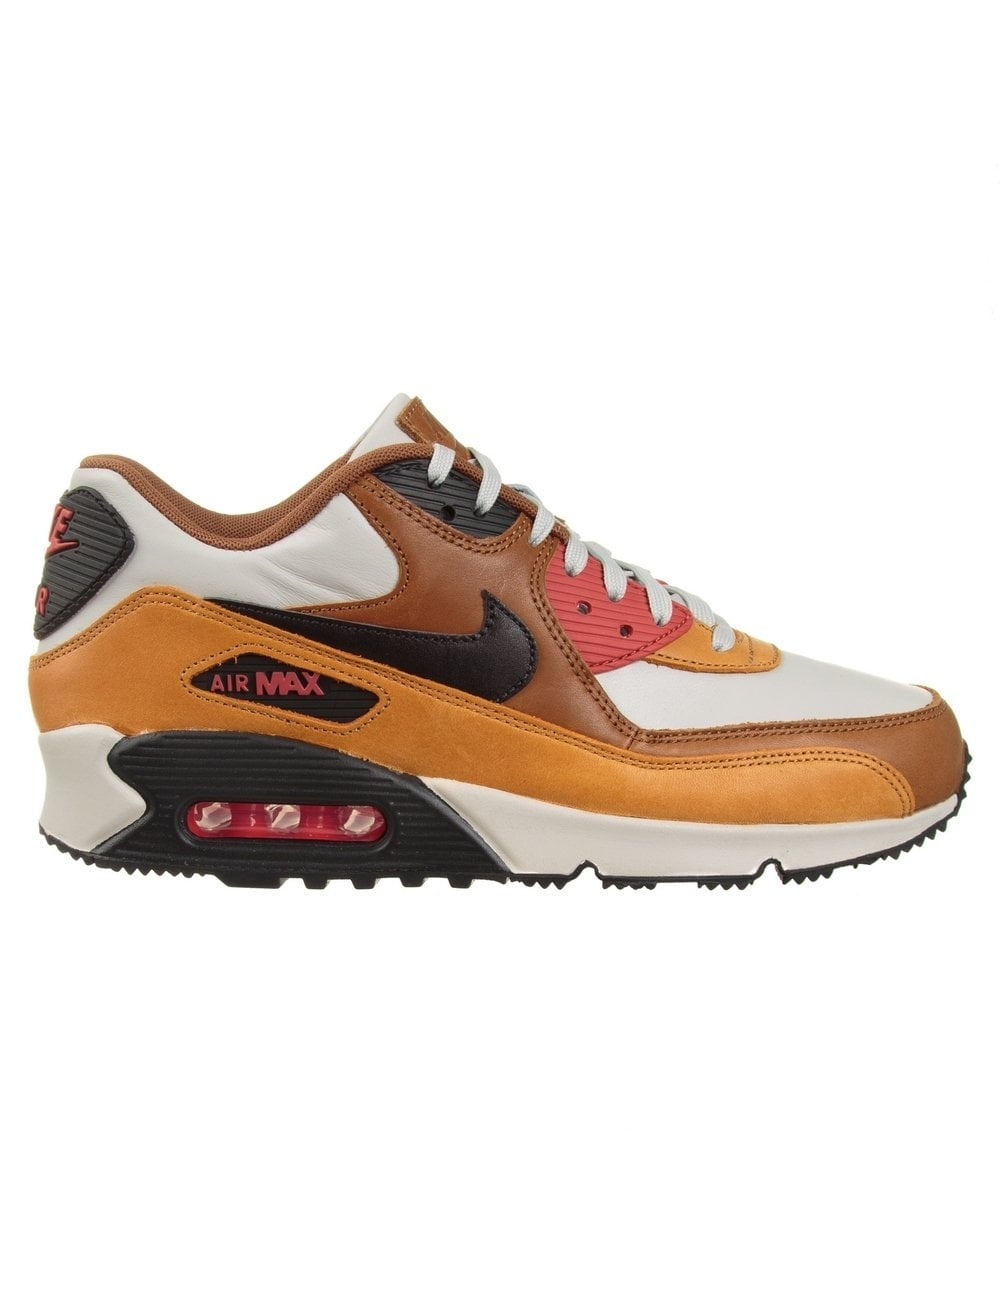 buy popular 197bb c09a1 Nike Air Max 90 QS - Escape Pack - Footwear from Fat Buddha Store UK